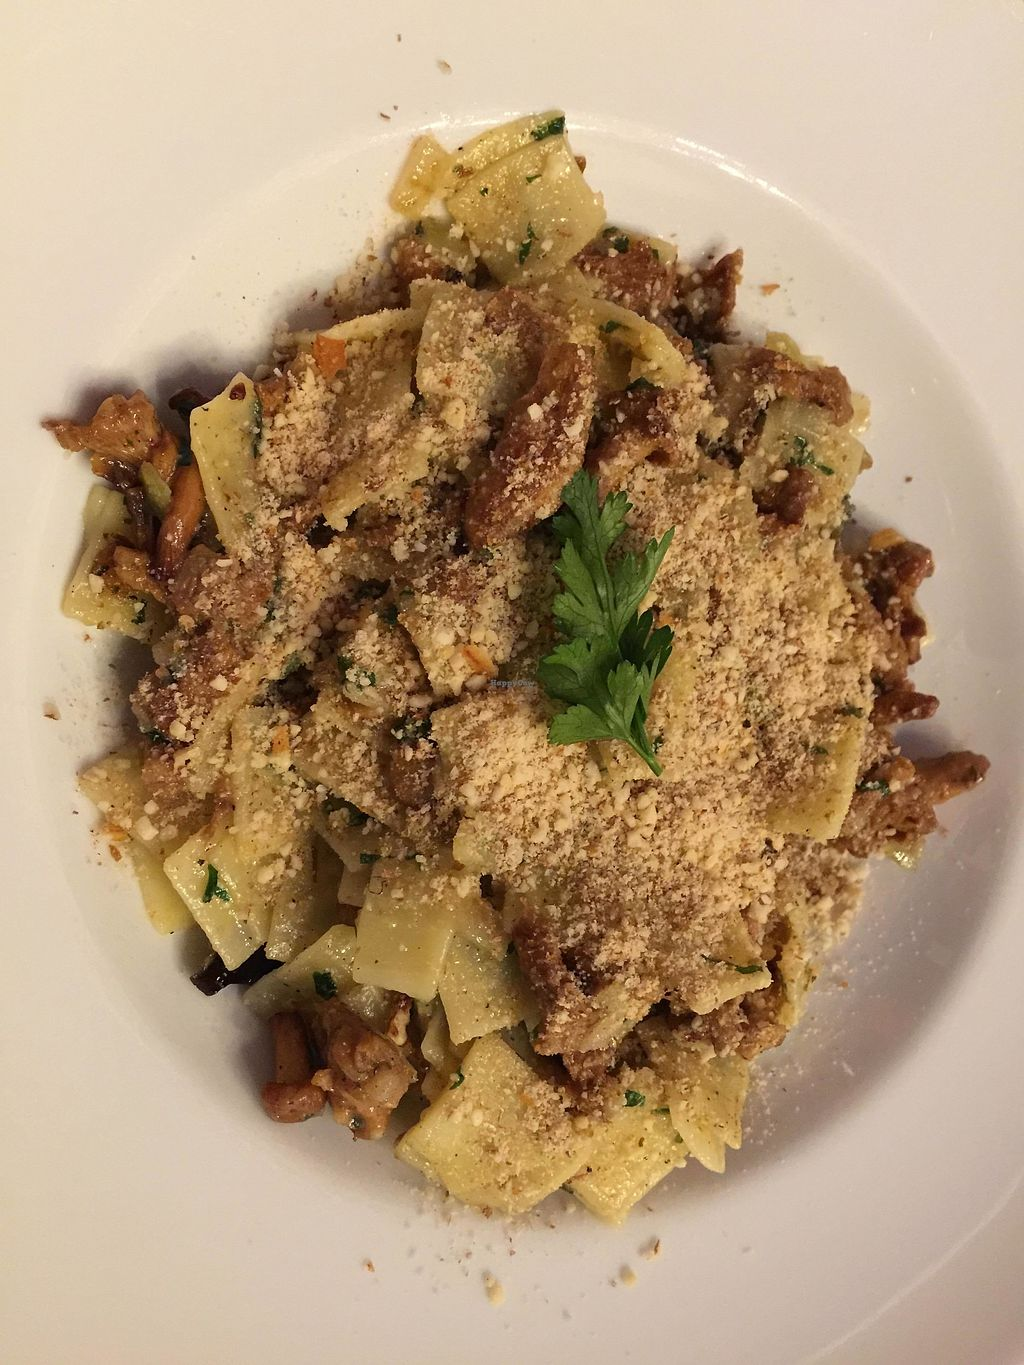 """Photo of Vege Bistro - Polish Vegan Food  by <a href=""""/members/profile/FernandoMoreira"""">FernandoMoreira</a> <br/>noodles with mushrooms <br/> February 20, 2018  - <a href='/contact/abuse/image/58057/361788'>Report</a>"""